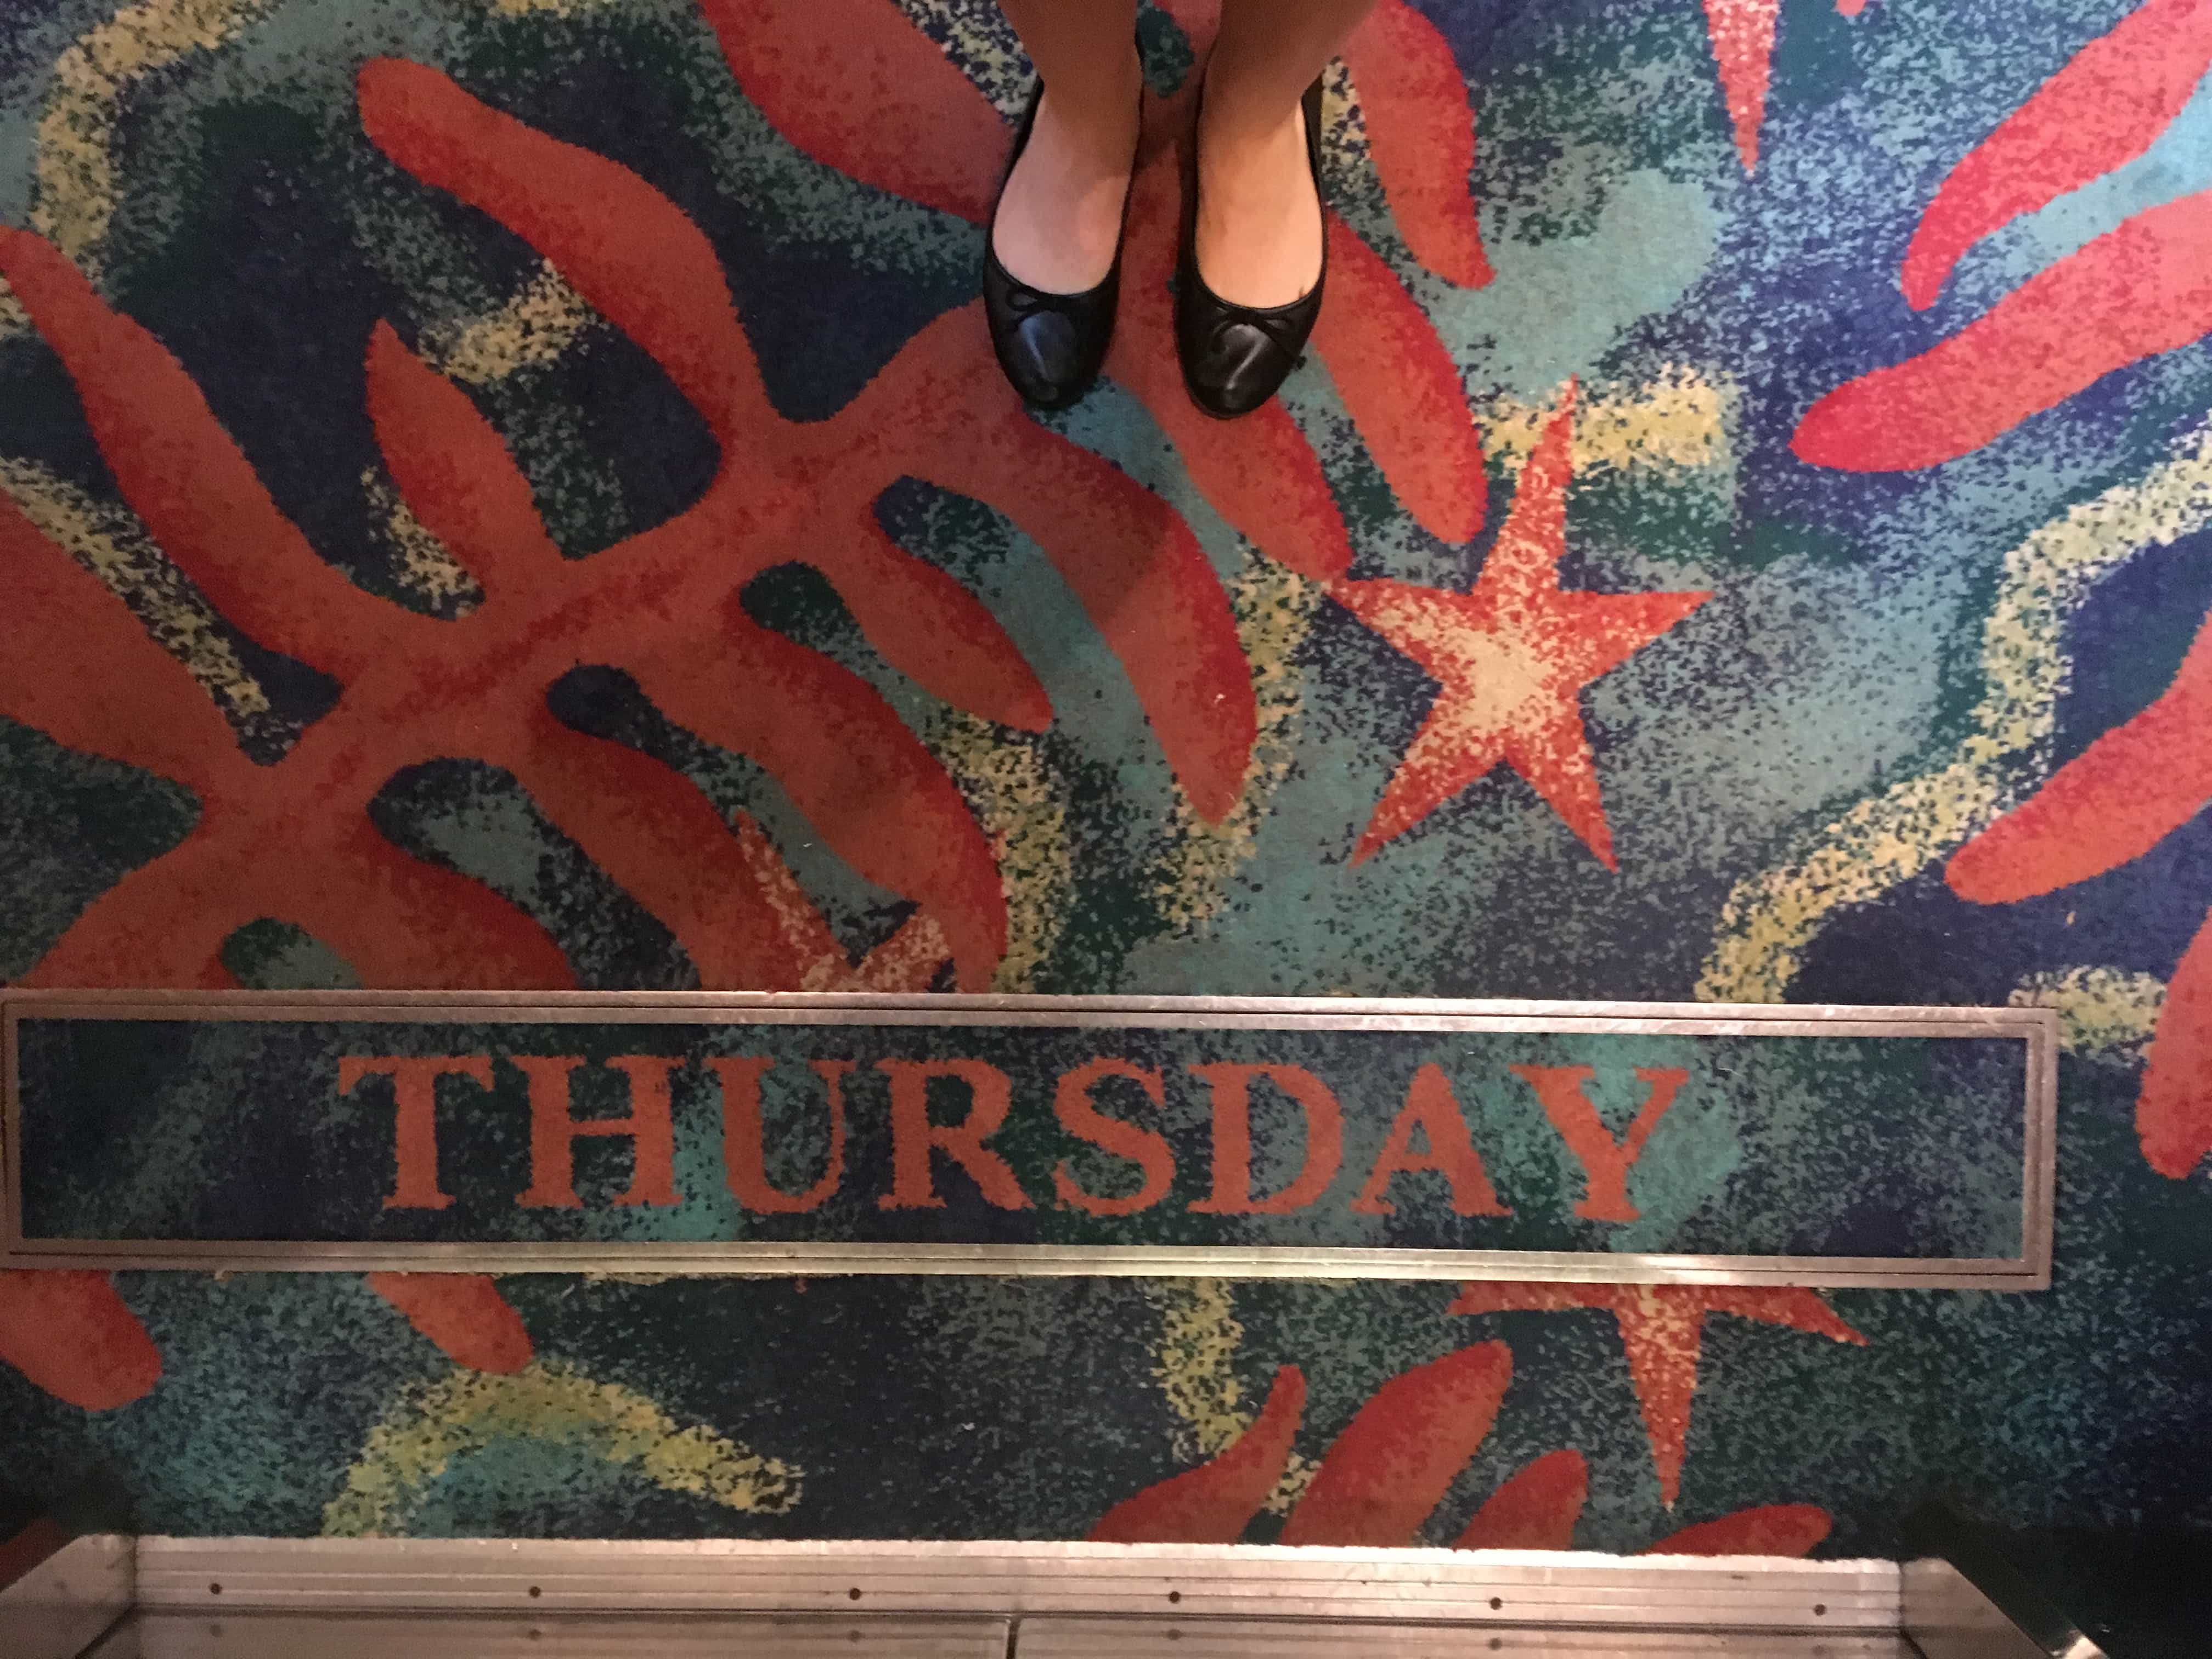 royal caribbean independence of the seas carpet day of the week thursday